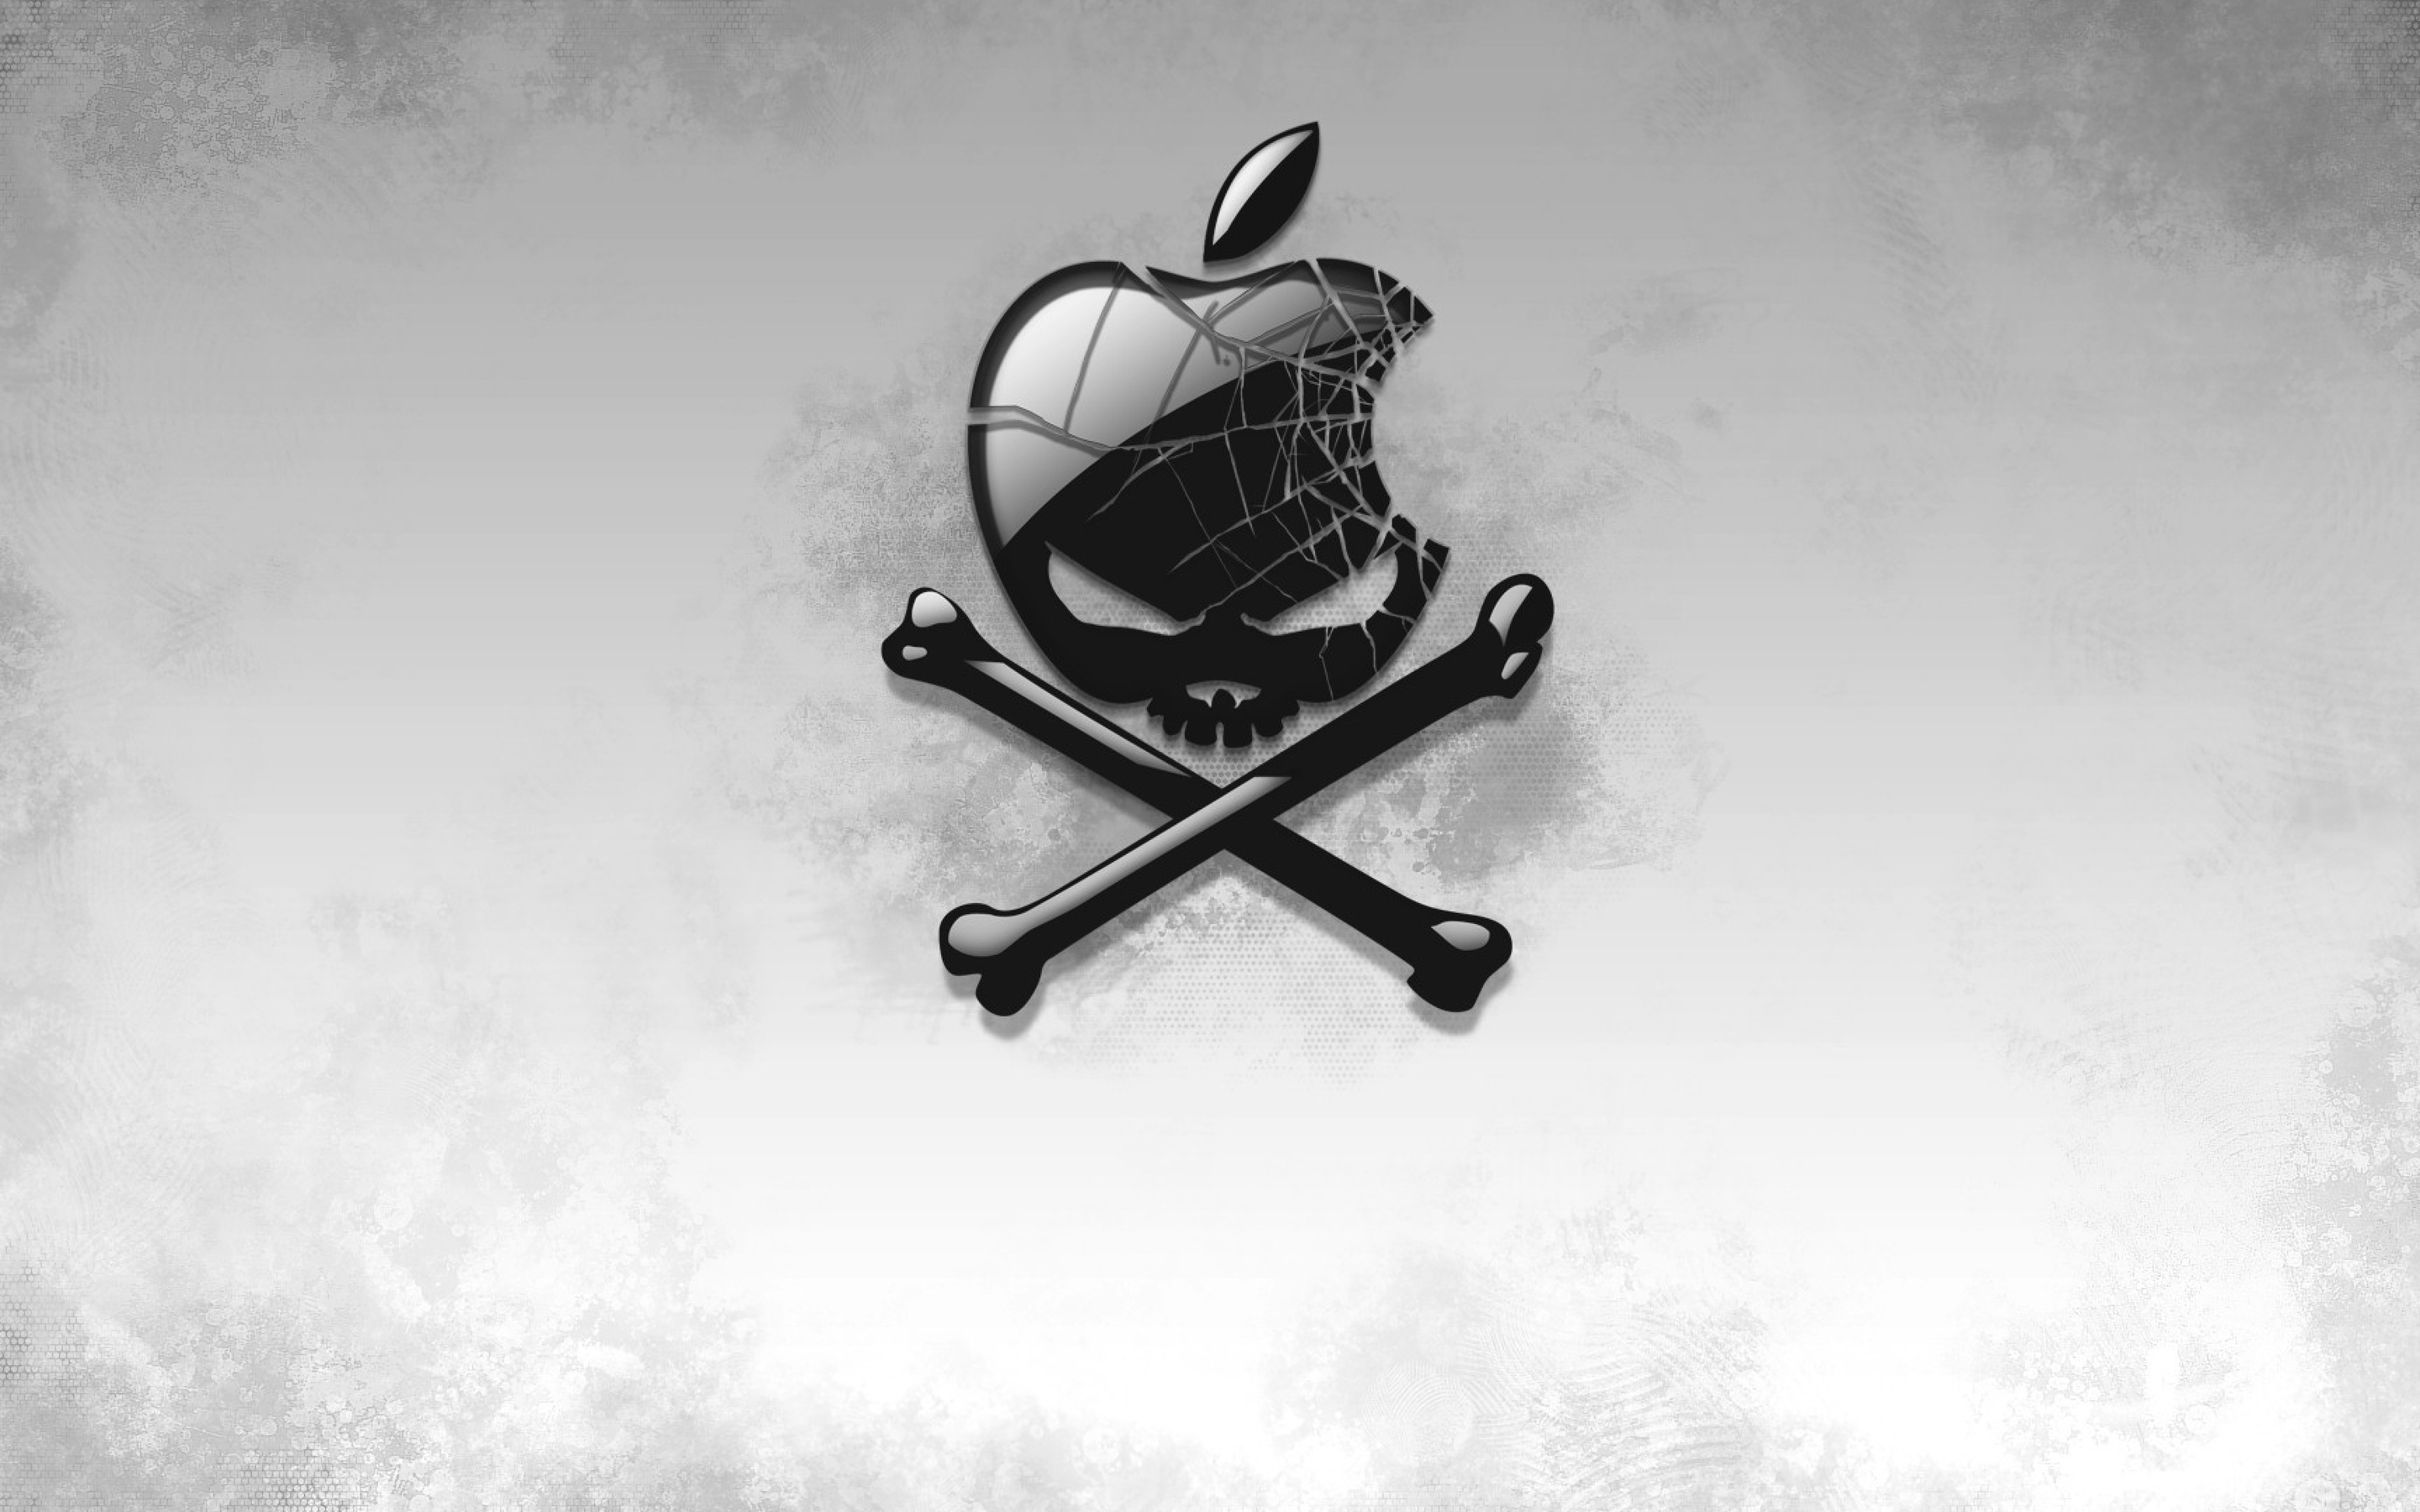 black-apple-skull-image.jpg